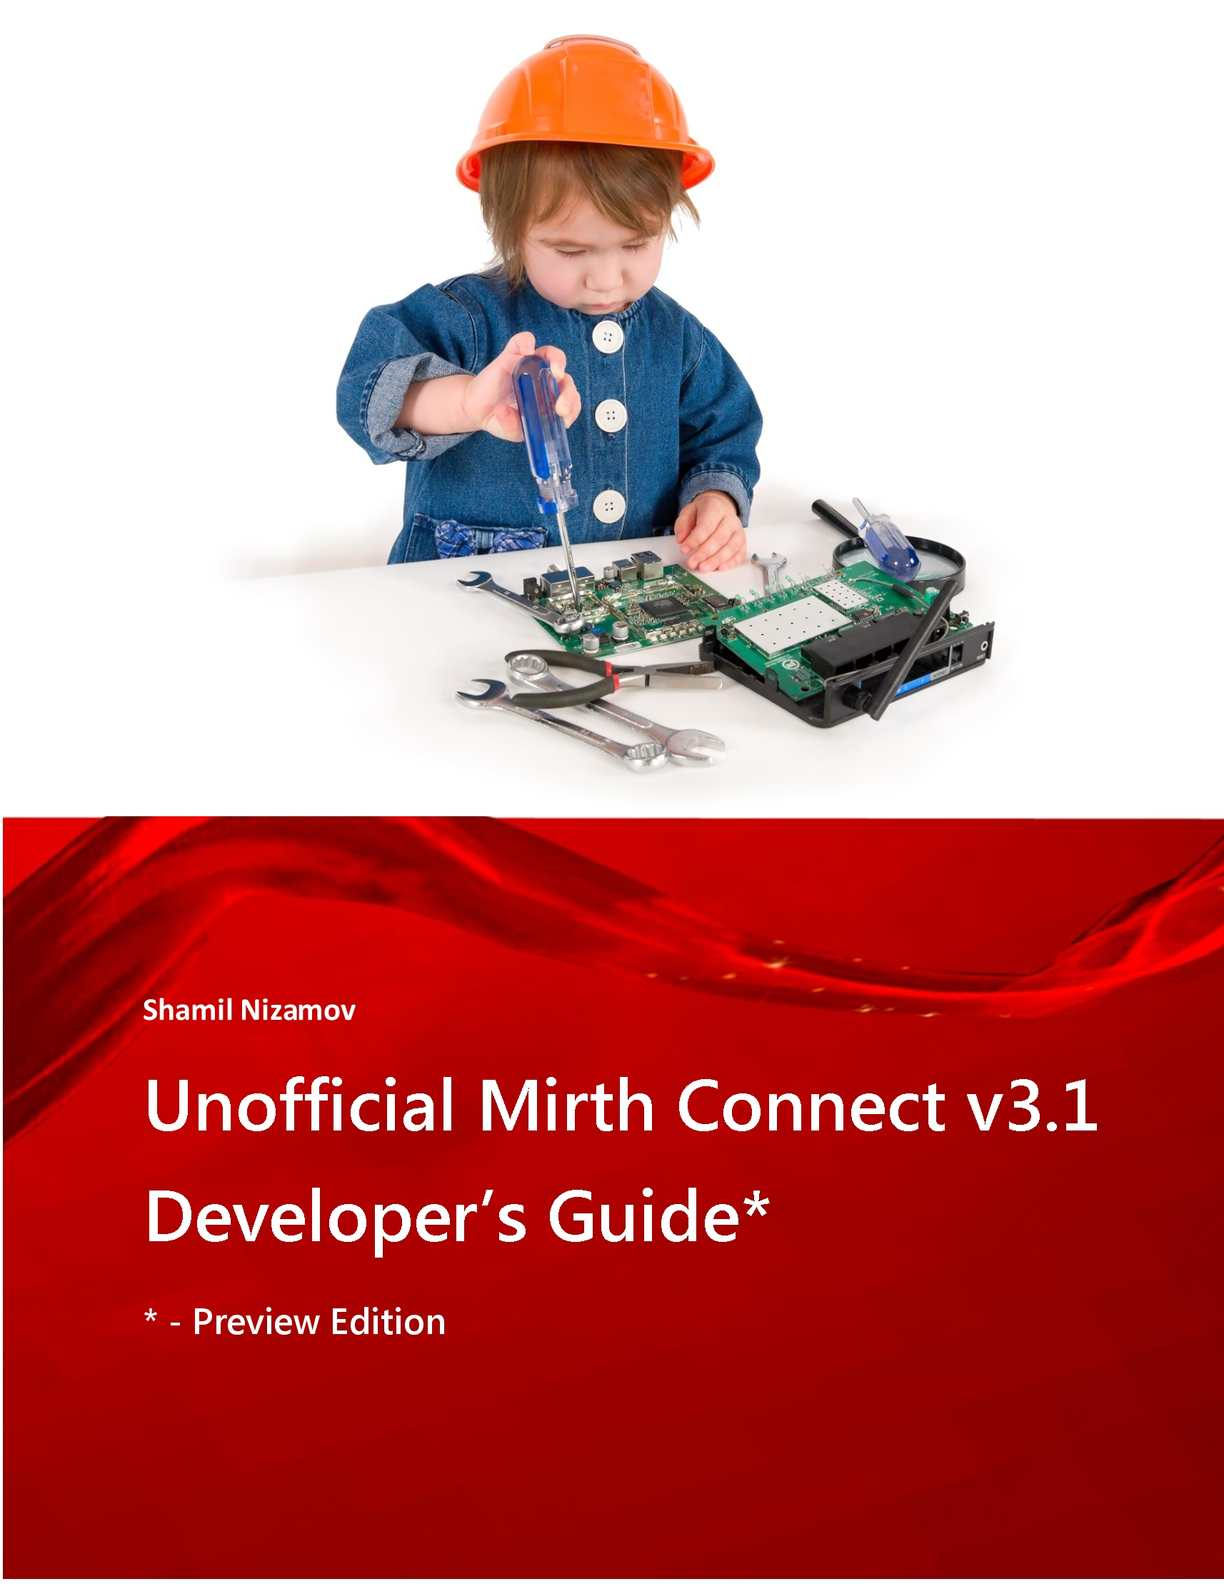 Calaméo - Unofficial Mirth Connect Developer's Guide